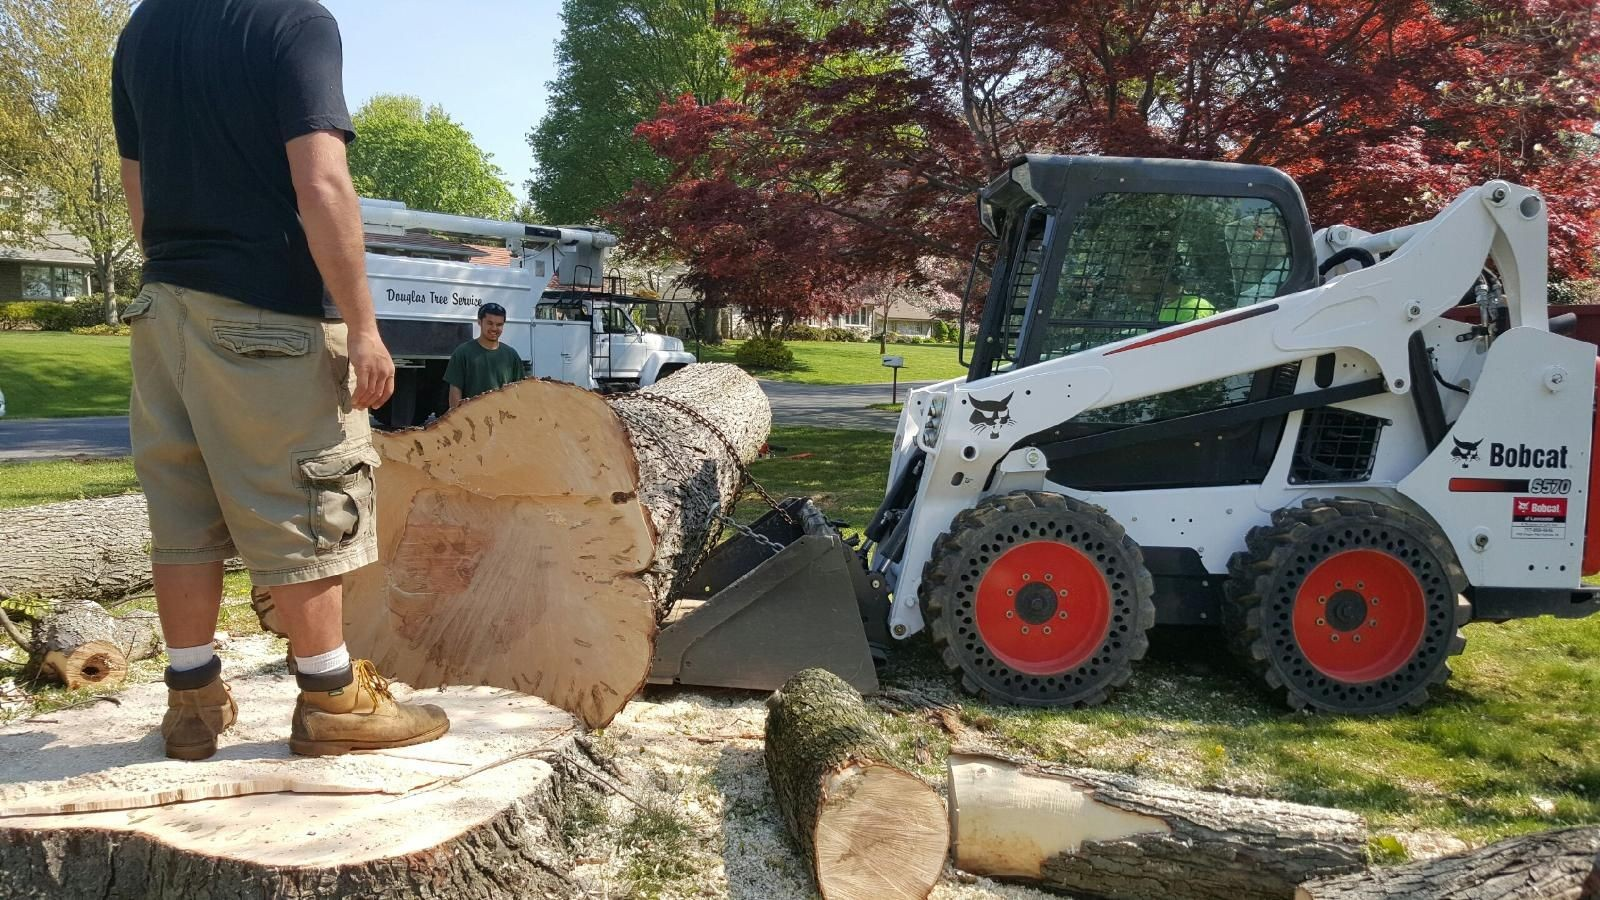 Mustang Island-Corpus Christi Tree Trimming and Stump Grinding Services-We Offer Tree Trimming Services, Tree Removal, Tree Pruning, Tree Cutting, Residential and Commercial Tree Trimming Services, Storm Damage, Emergency Tree Removal, Land Clearing, Tree Companies, Tree Care Service, Stump Grinding, and we're the Best Tree Trimming Company Near You Guaranteed!